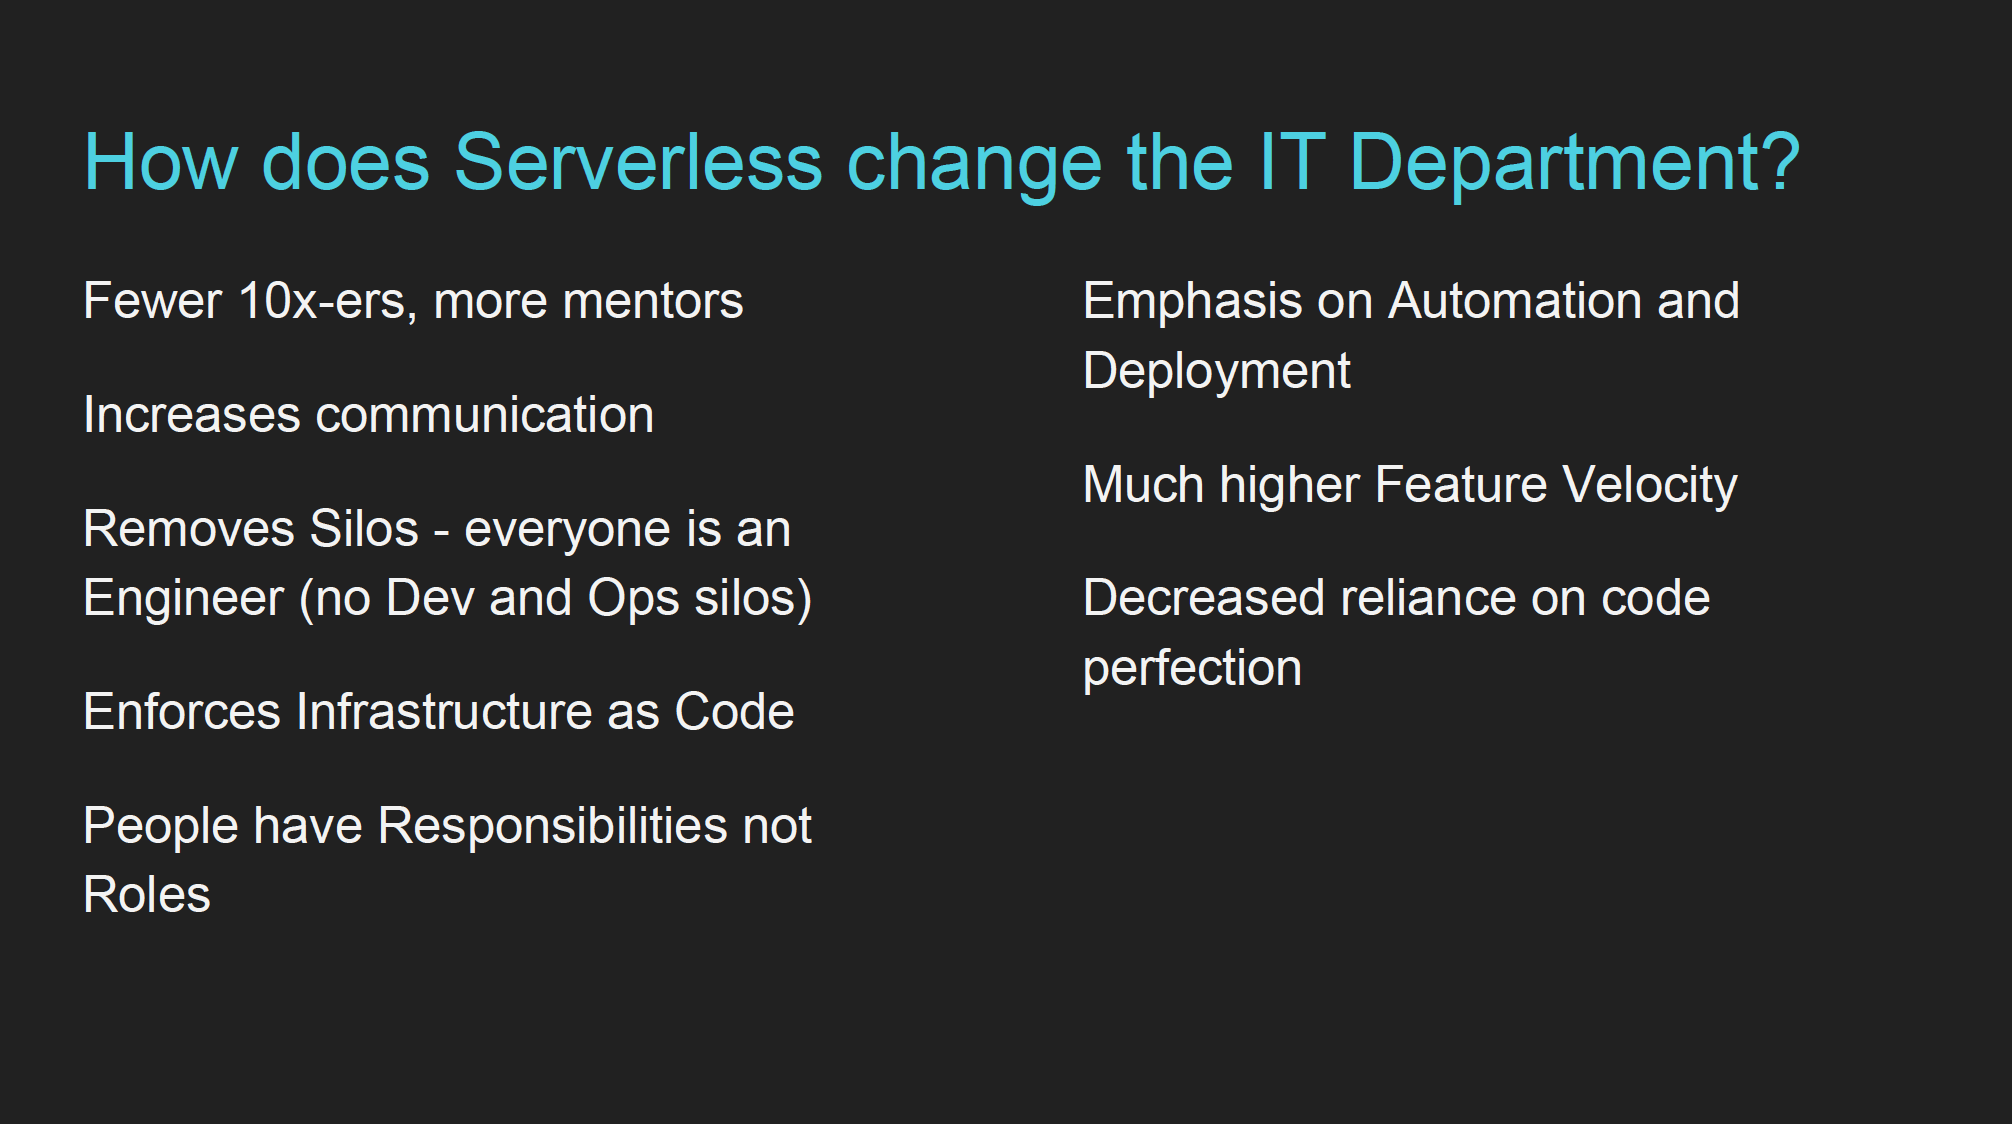 How does serverless change the IT department